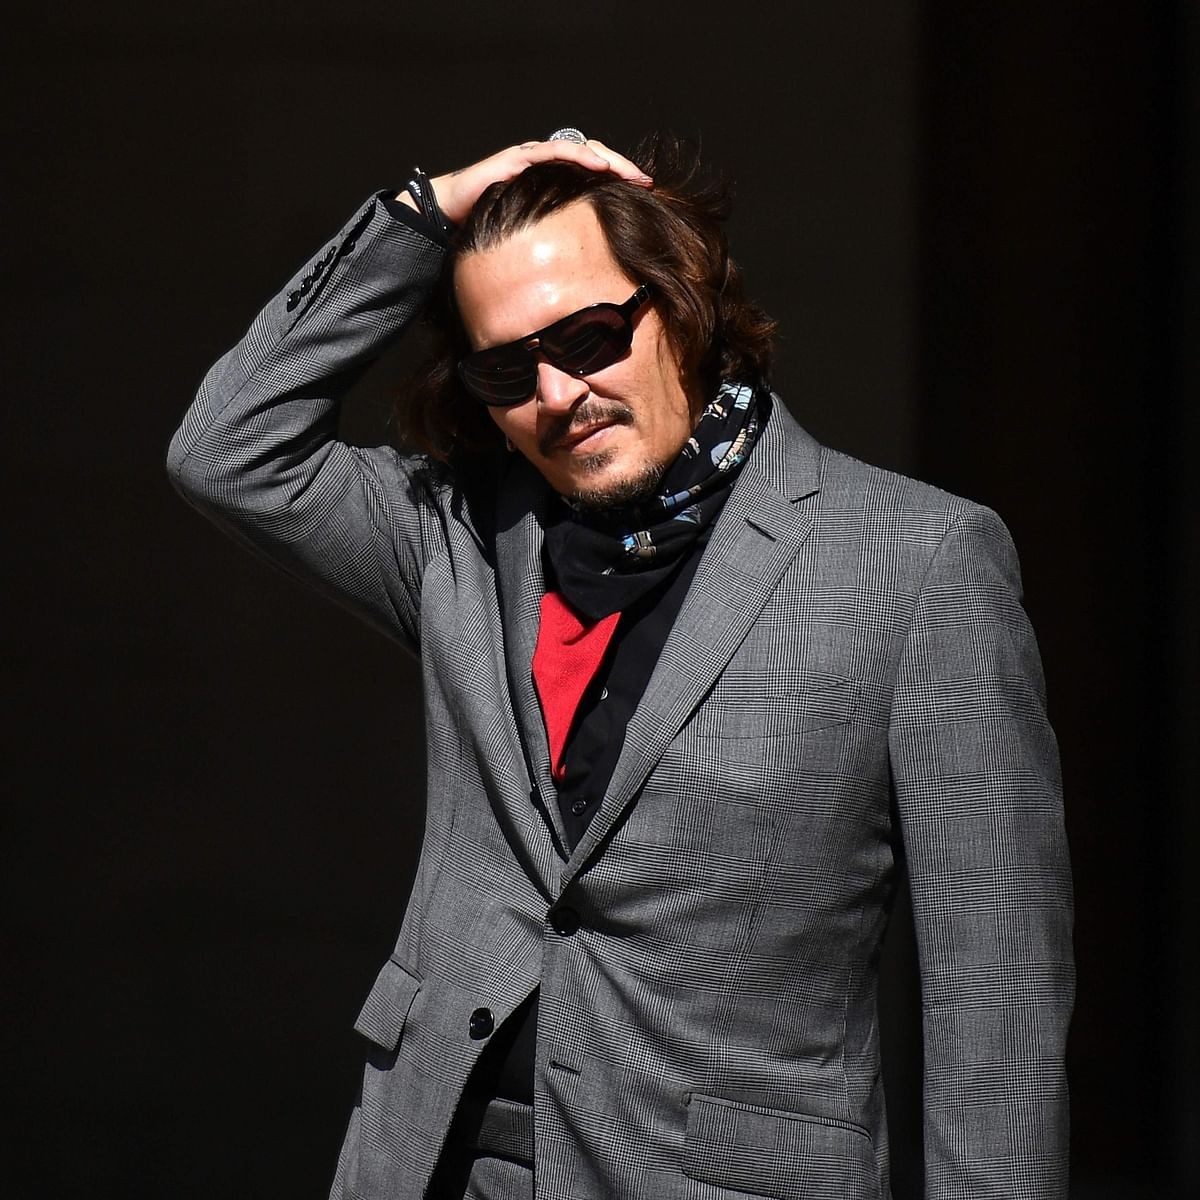 Johnny Depp loses libel case against UK tabloid over 'wife beater' article